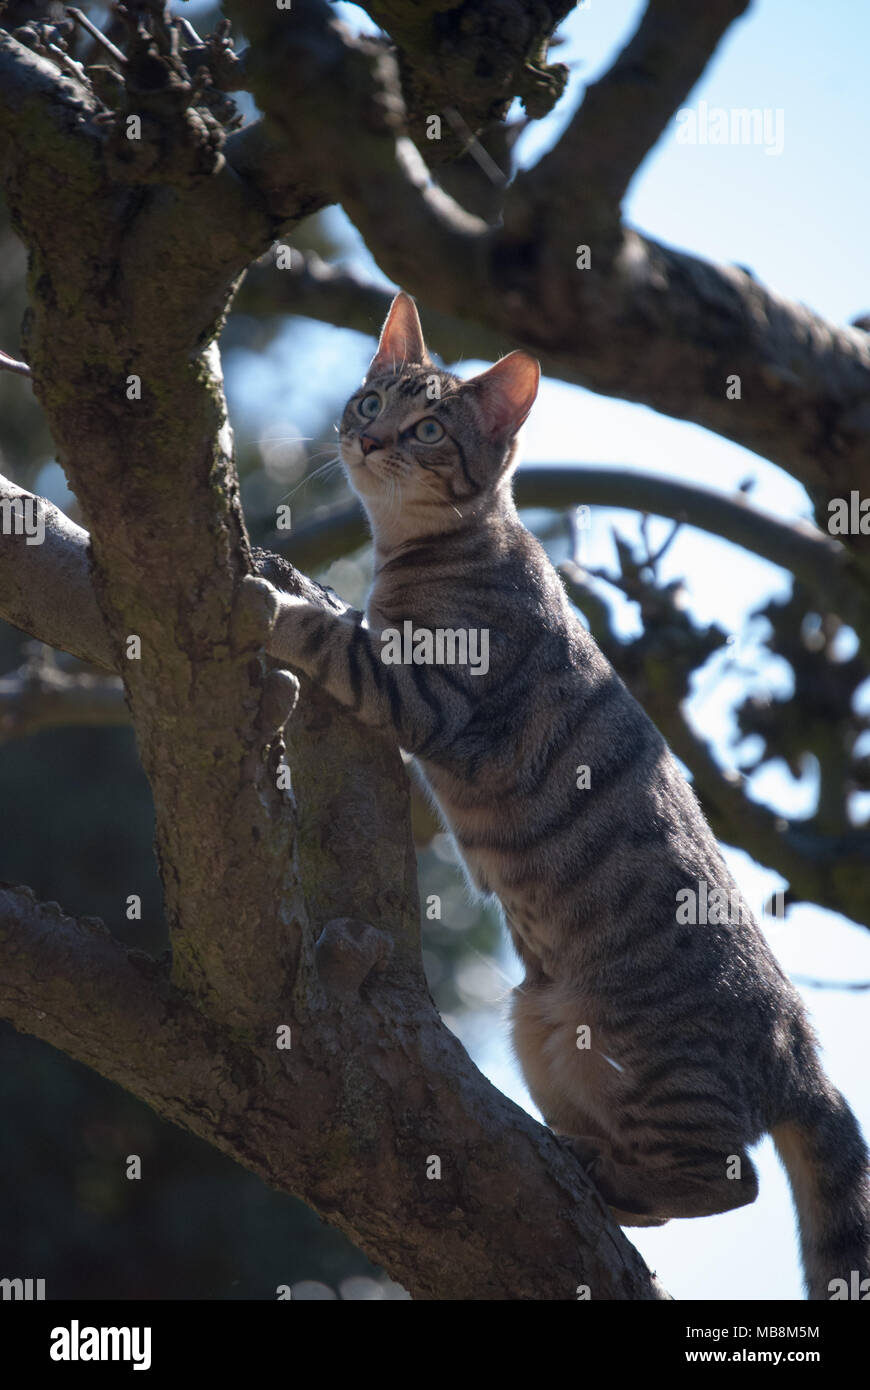 Bengal cat climbing a bare leafless tree.  Cat standing upright with the sun on her.  Very beautiful young cat. Stripy, shiny coat.Close up picture.ca - Stock Image